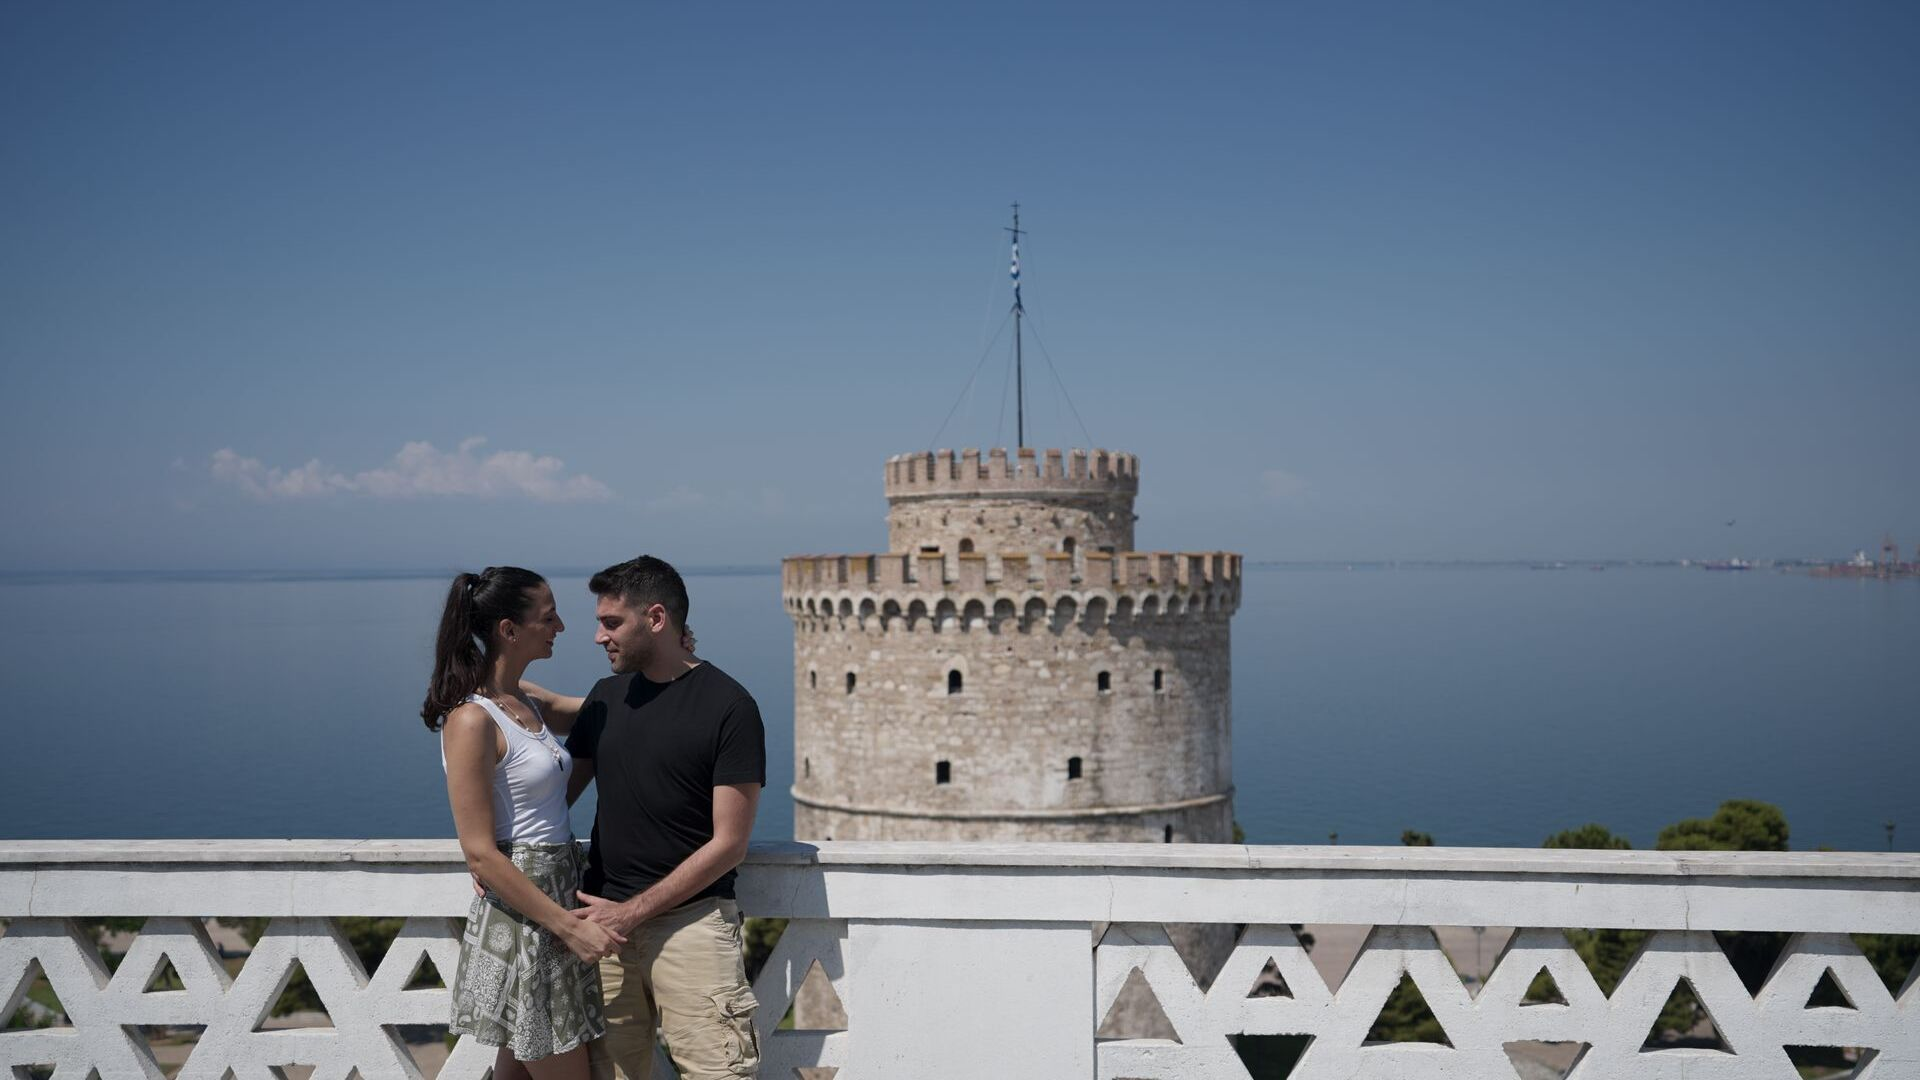 Thessaloniki is a city that invites you to walk it every hour of the day, with tree-lined avenues and a vibrant atmosphere.